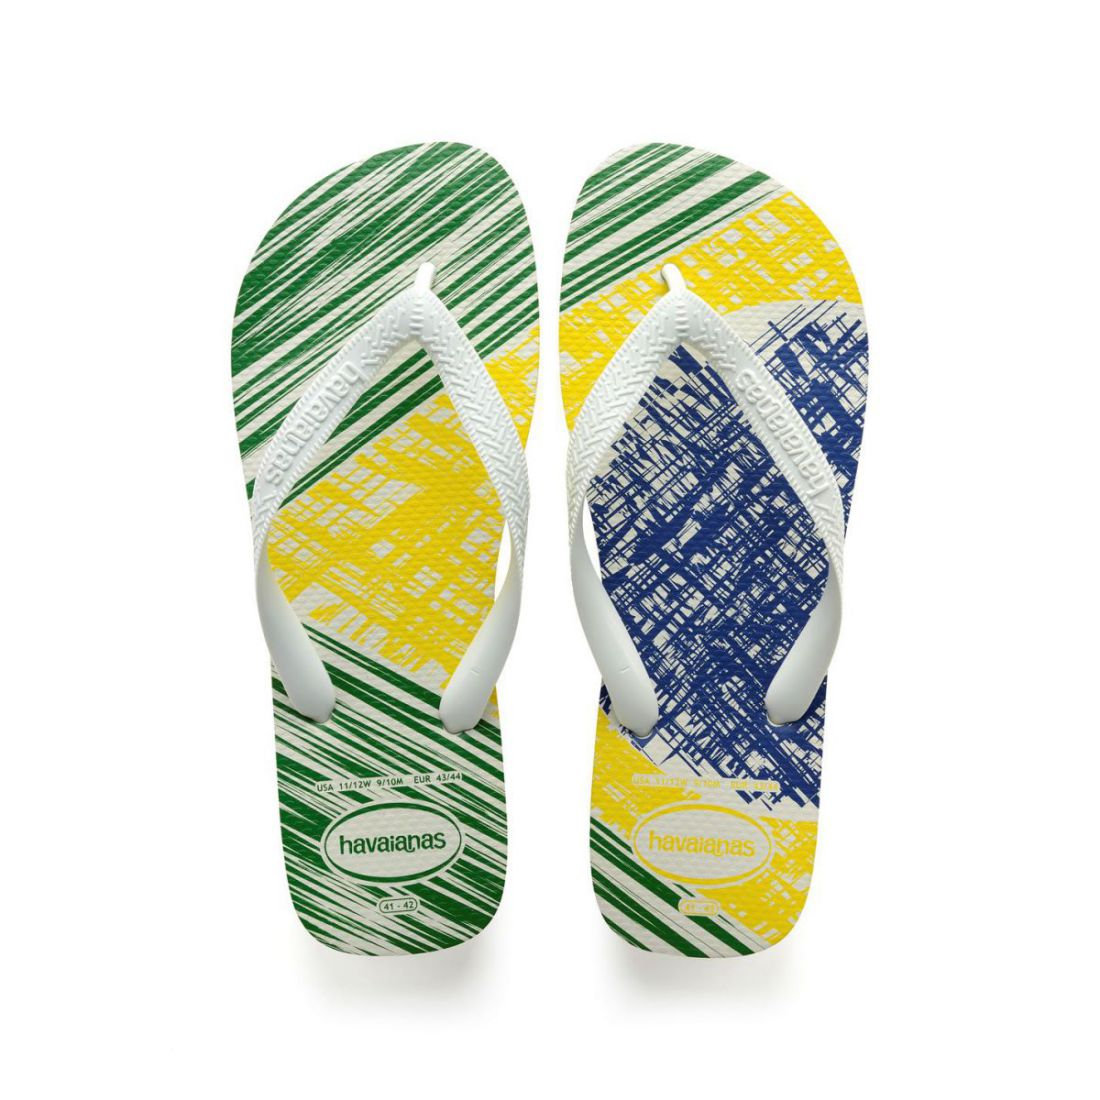 592392c87b3 Details about Havaianas Mens Brasil Print Flip Flops Strap Toe Post Summer  Textured